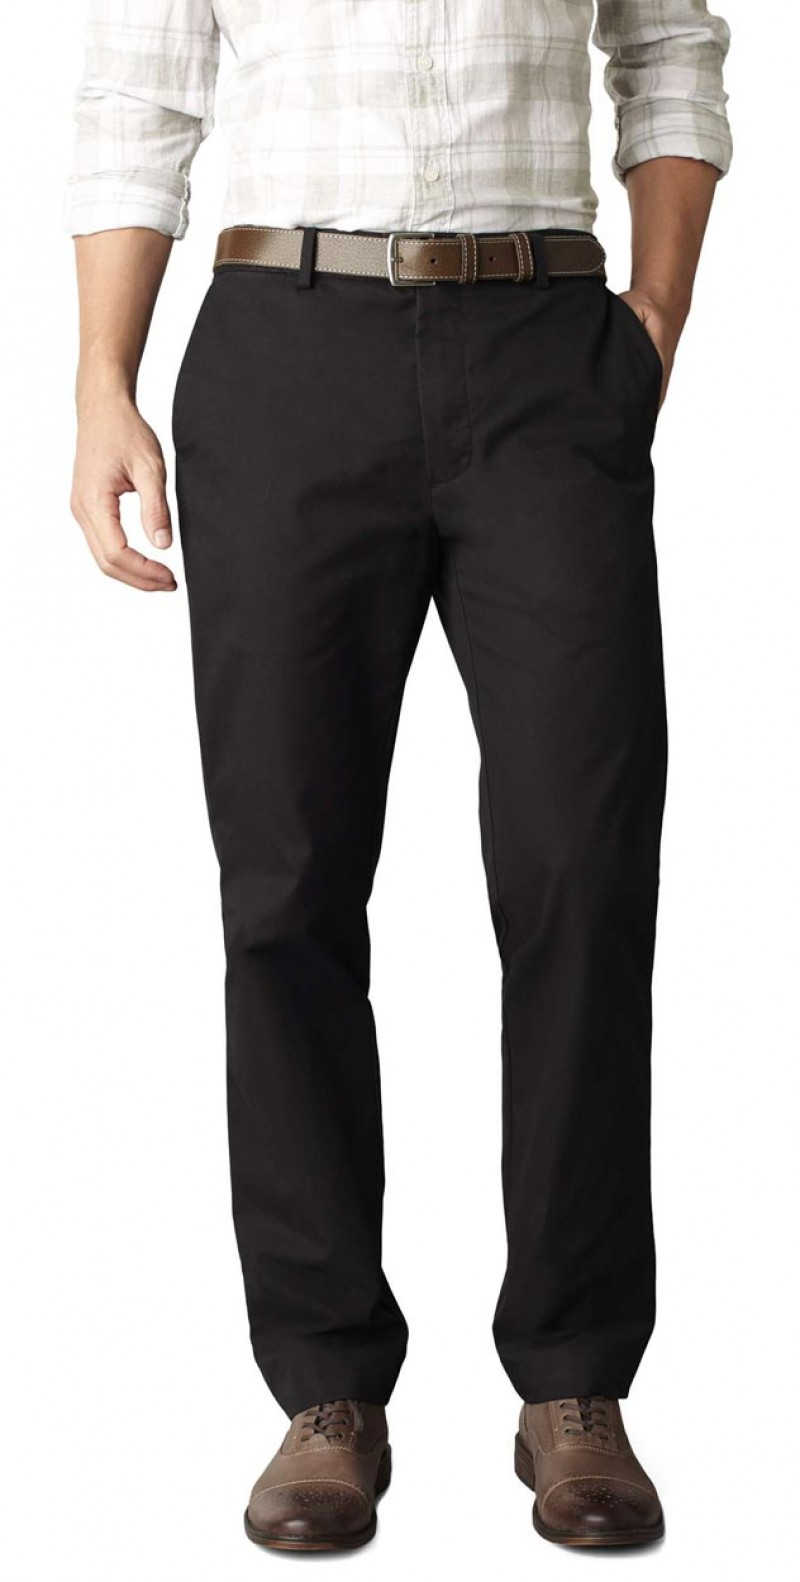 Dockers SF Khaki Hose - Slim Tapered - Black v